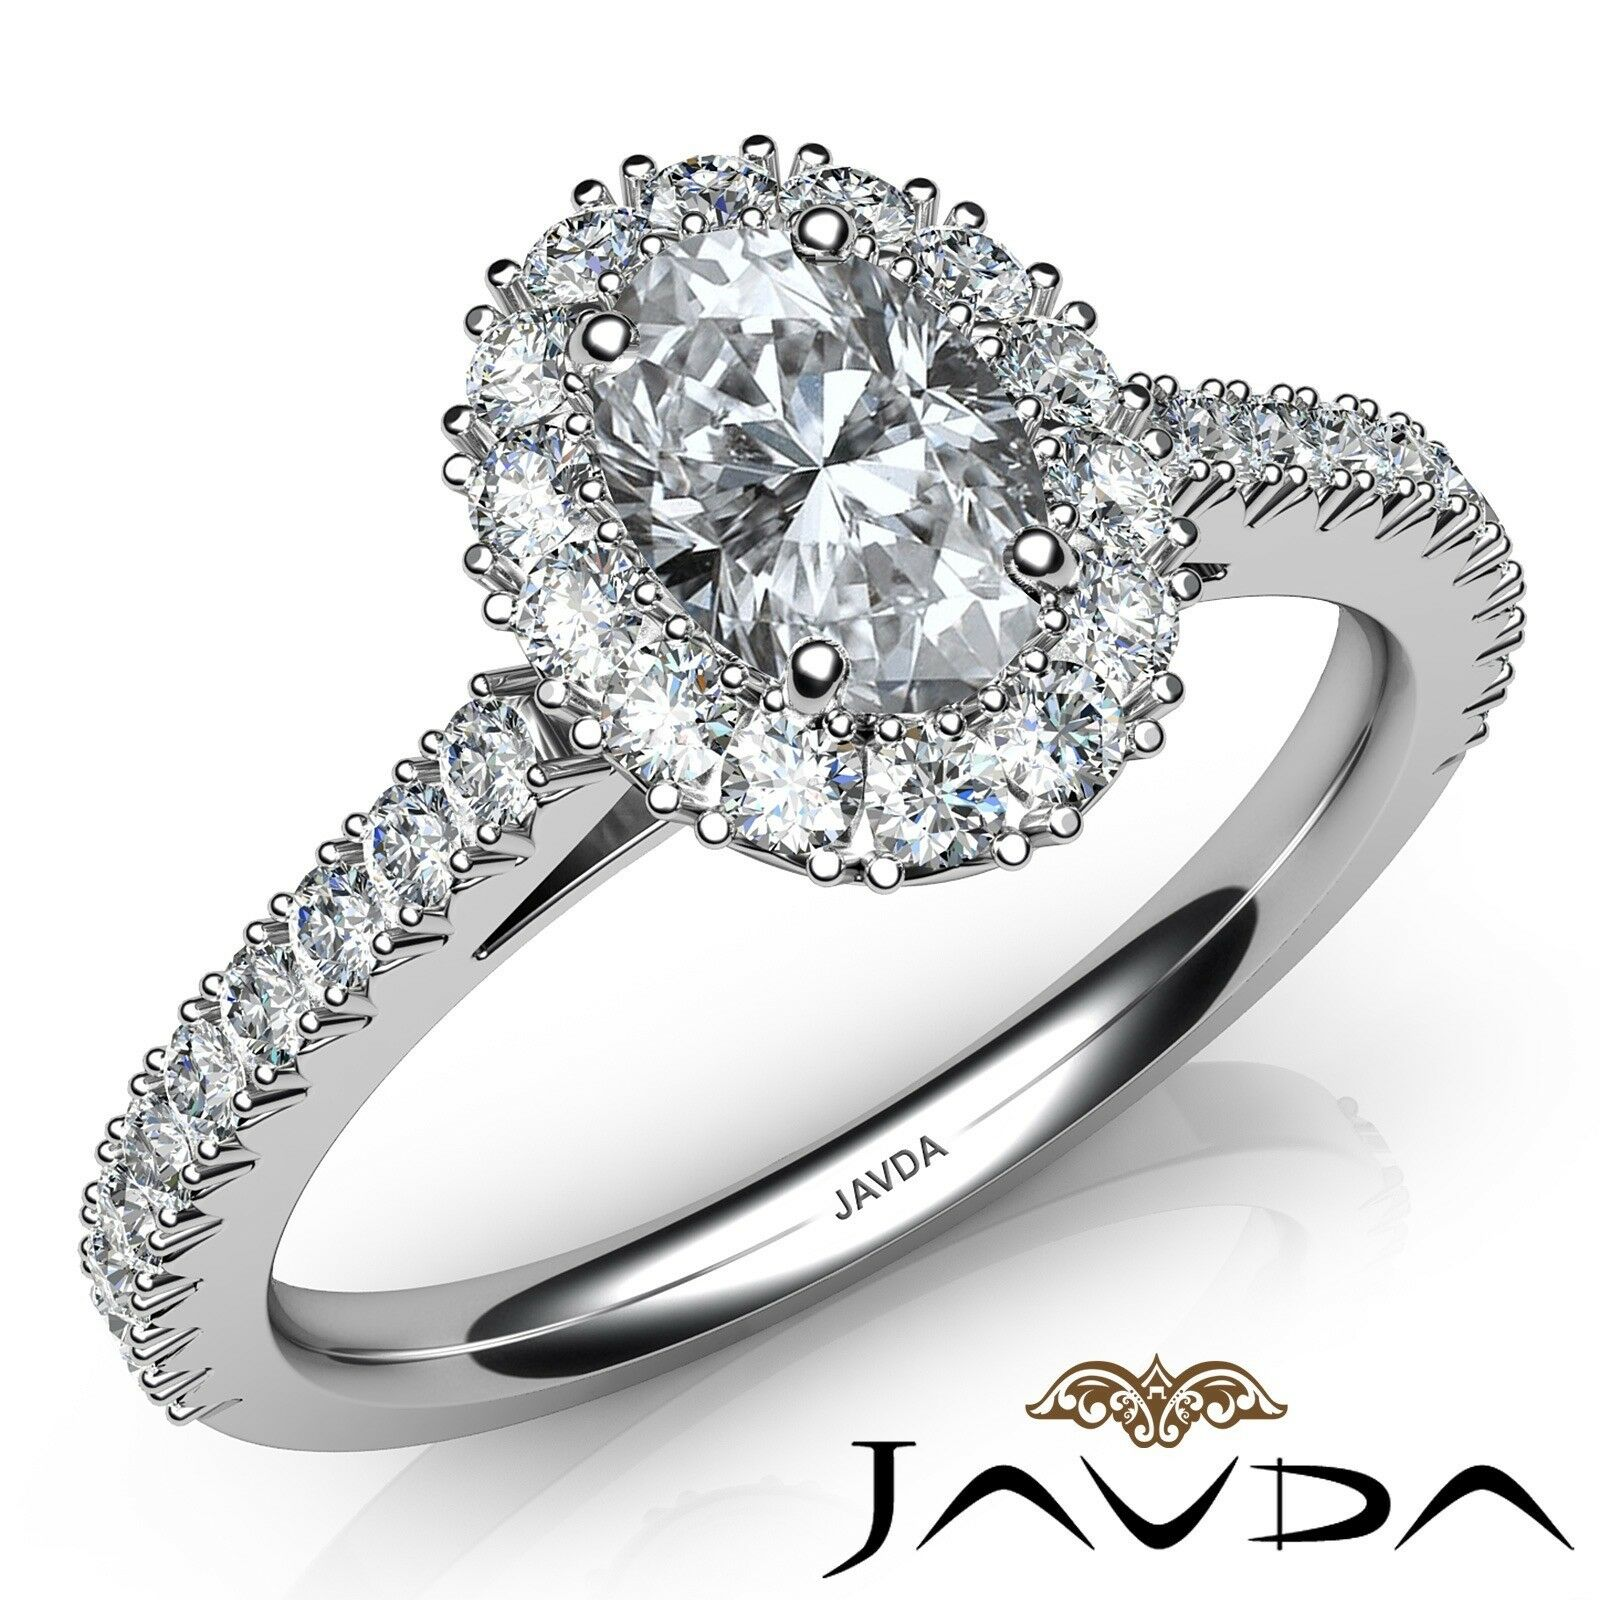 1.52ctw French V Cut Halo Pave Oval Diamond Engagement Ring GIA J-VVS2 W Gold